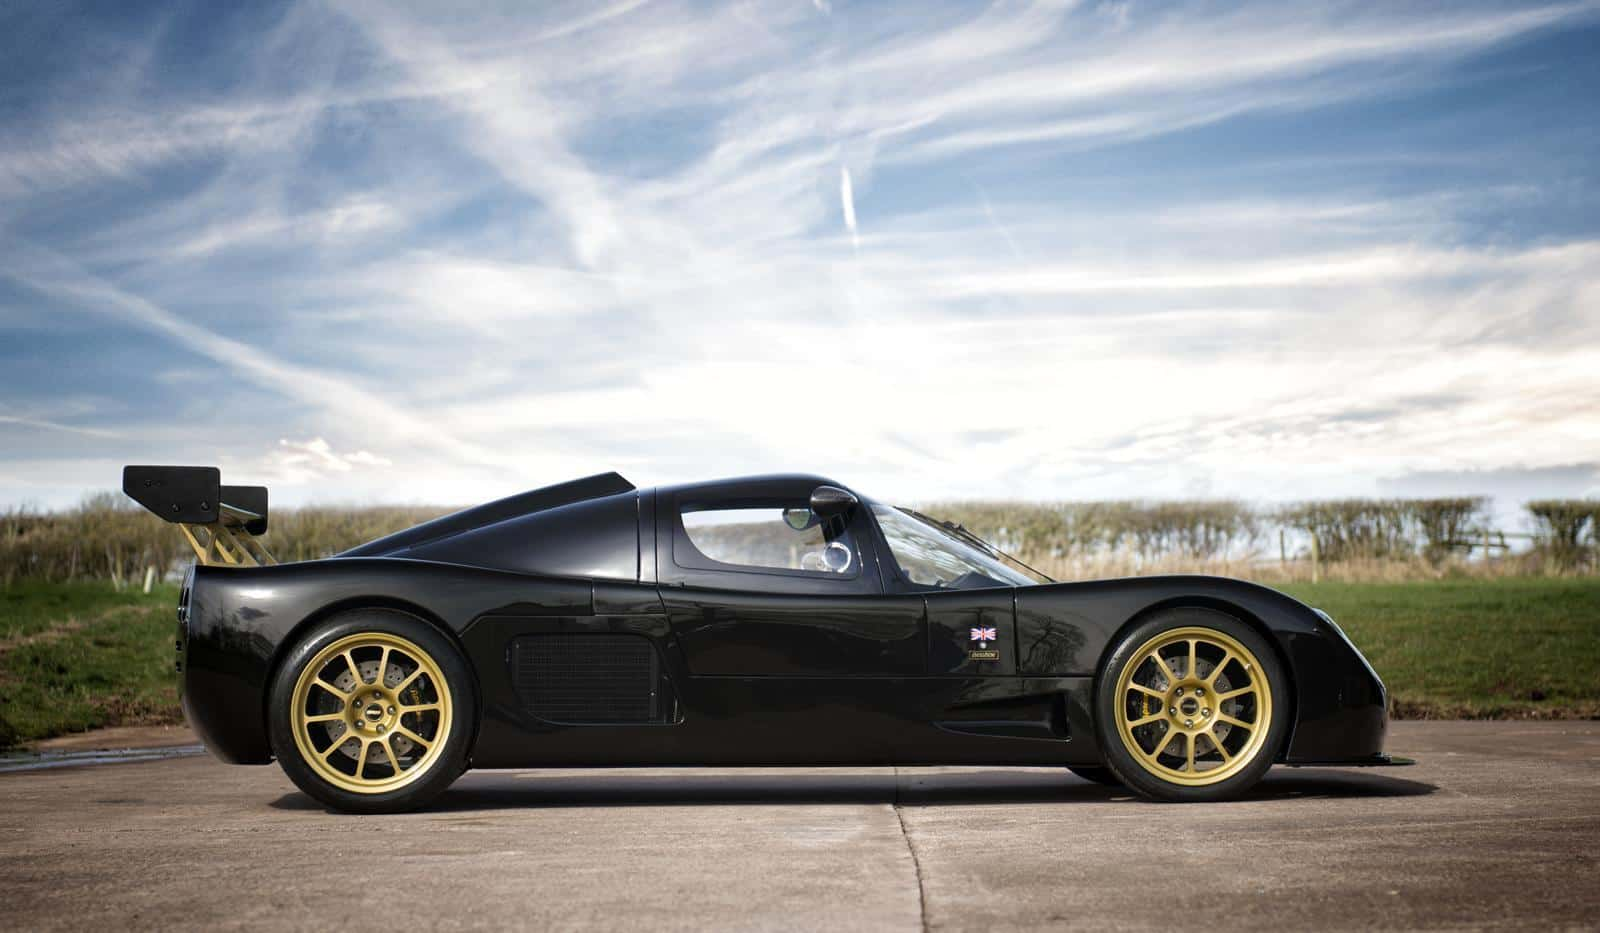 Wallpaper Amazing Convertible Cars 1 020 Bhp Ultima Evolution Coupe And Convertible